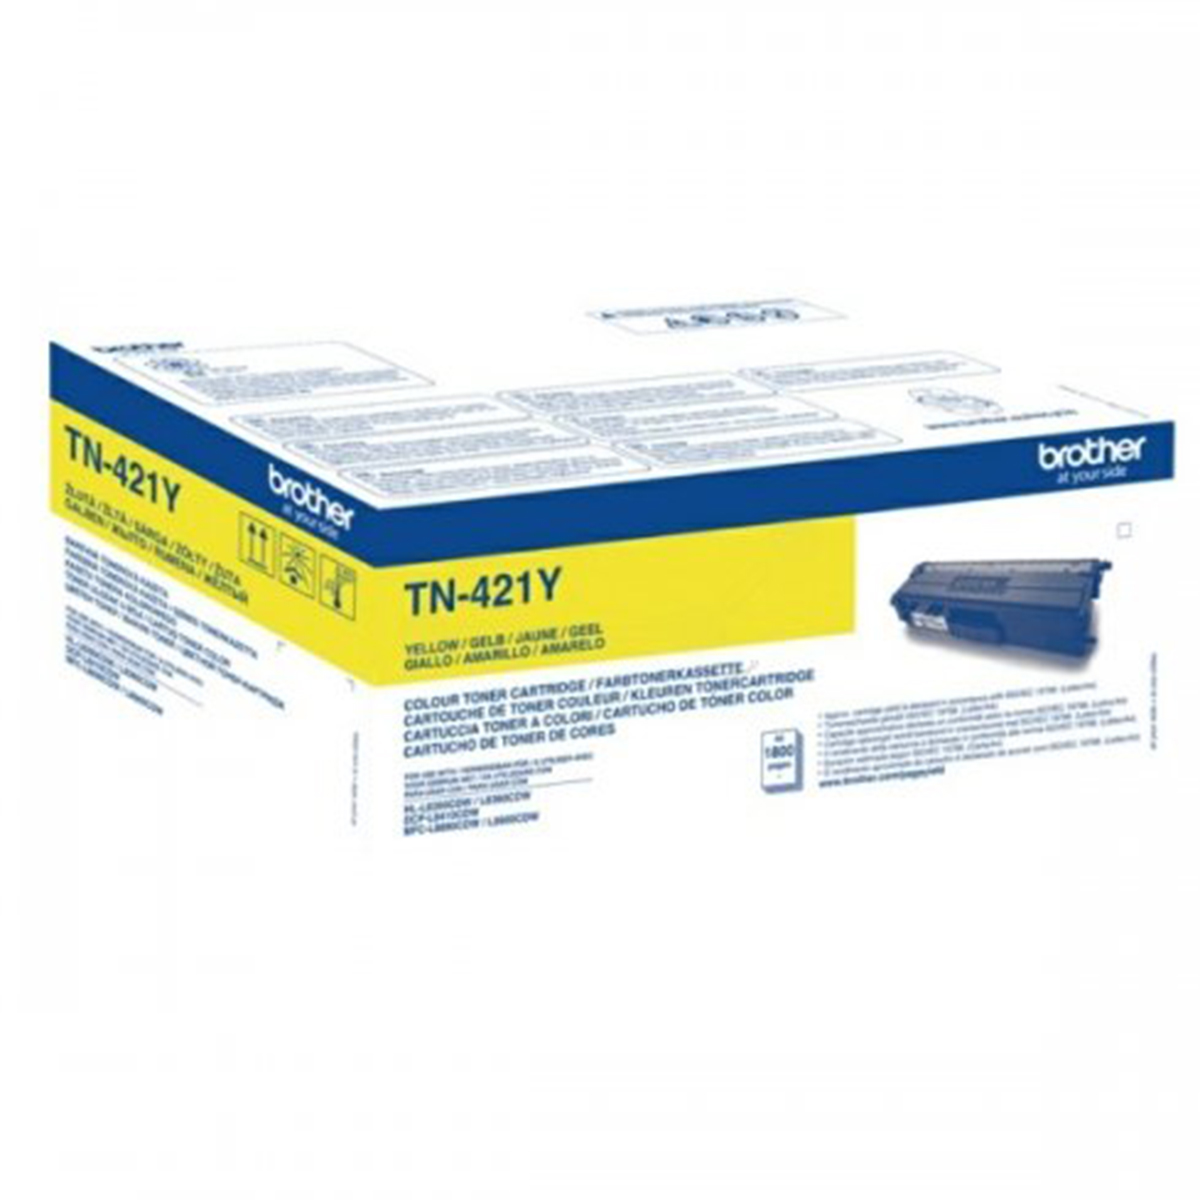 NEW-Brother-TN-421Y-Yellow-Toner